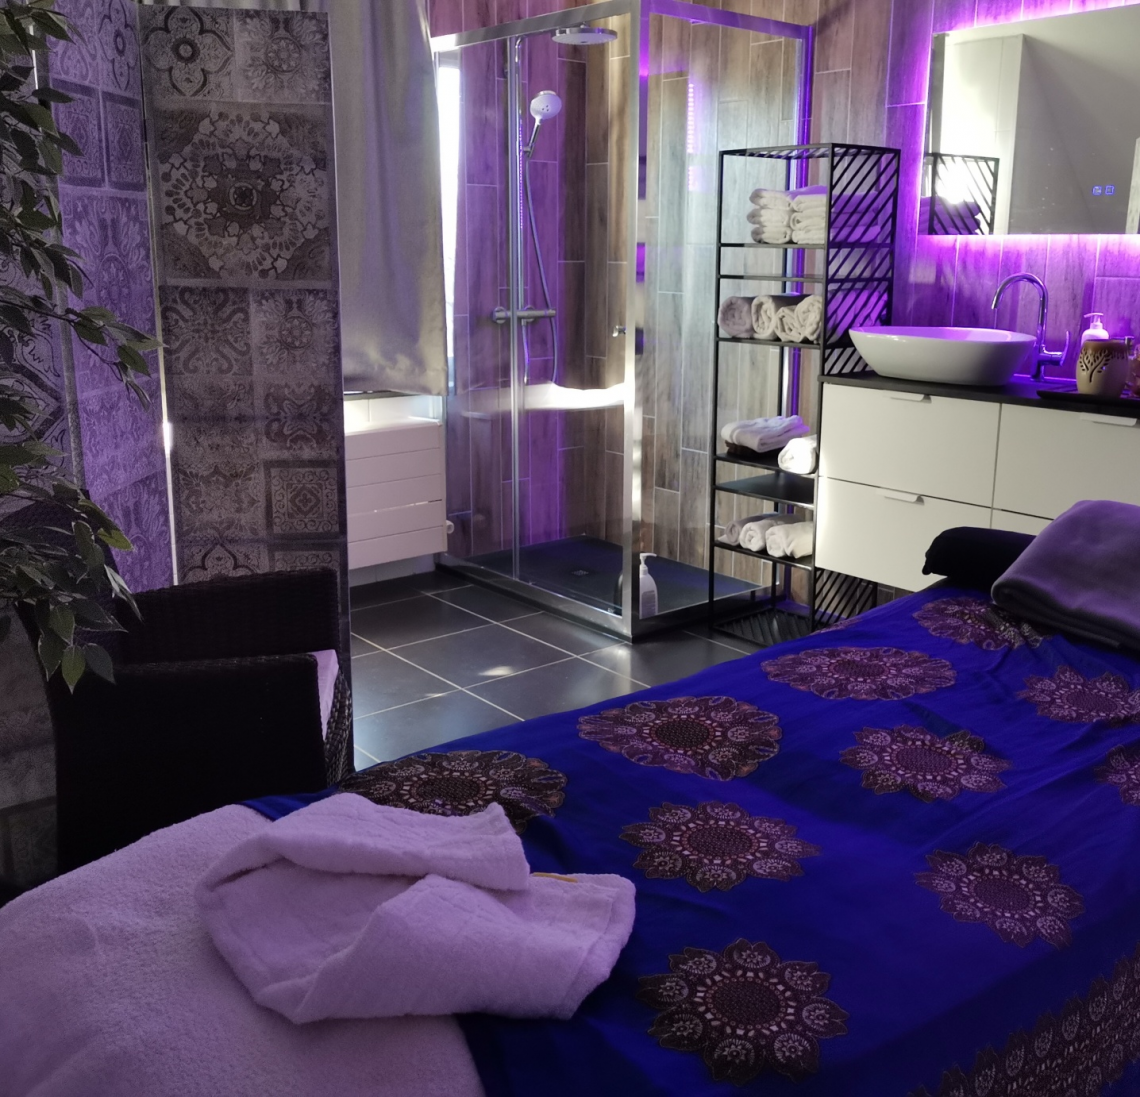 Samatha room (**) : massage and beauty treatments in new refined luxury room